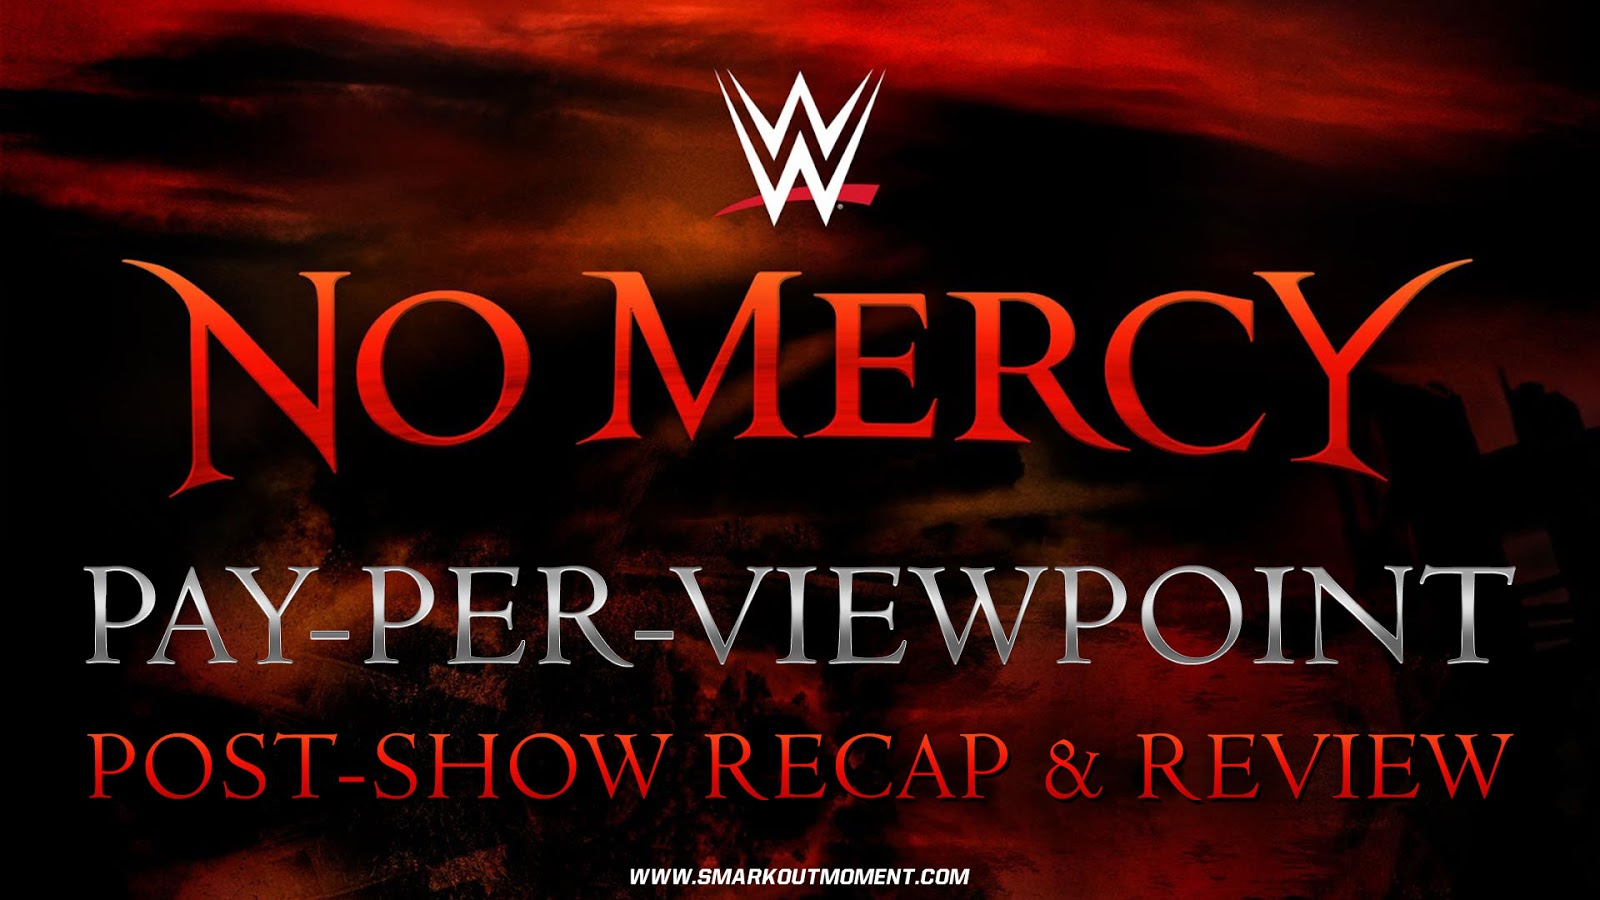 WWE NO MERCY 2017 Recap and Review Podcast